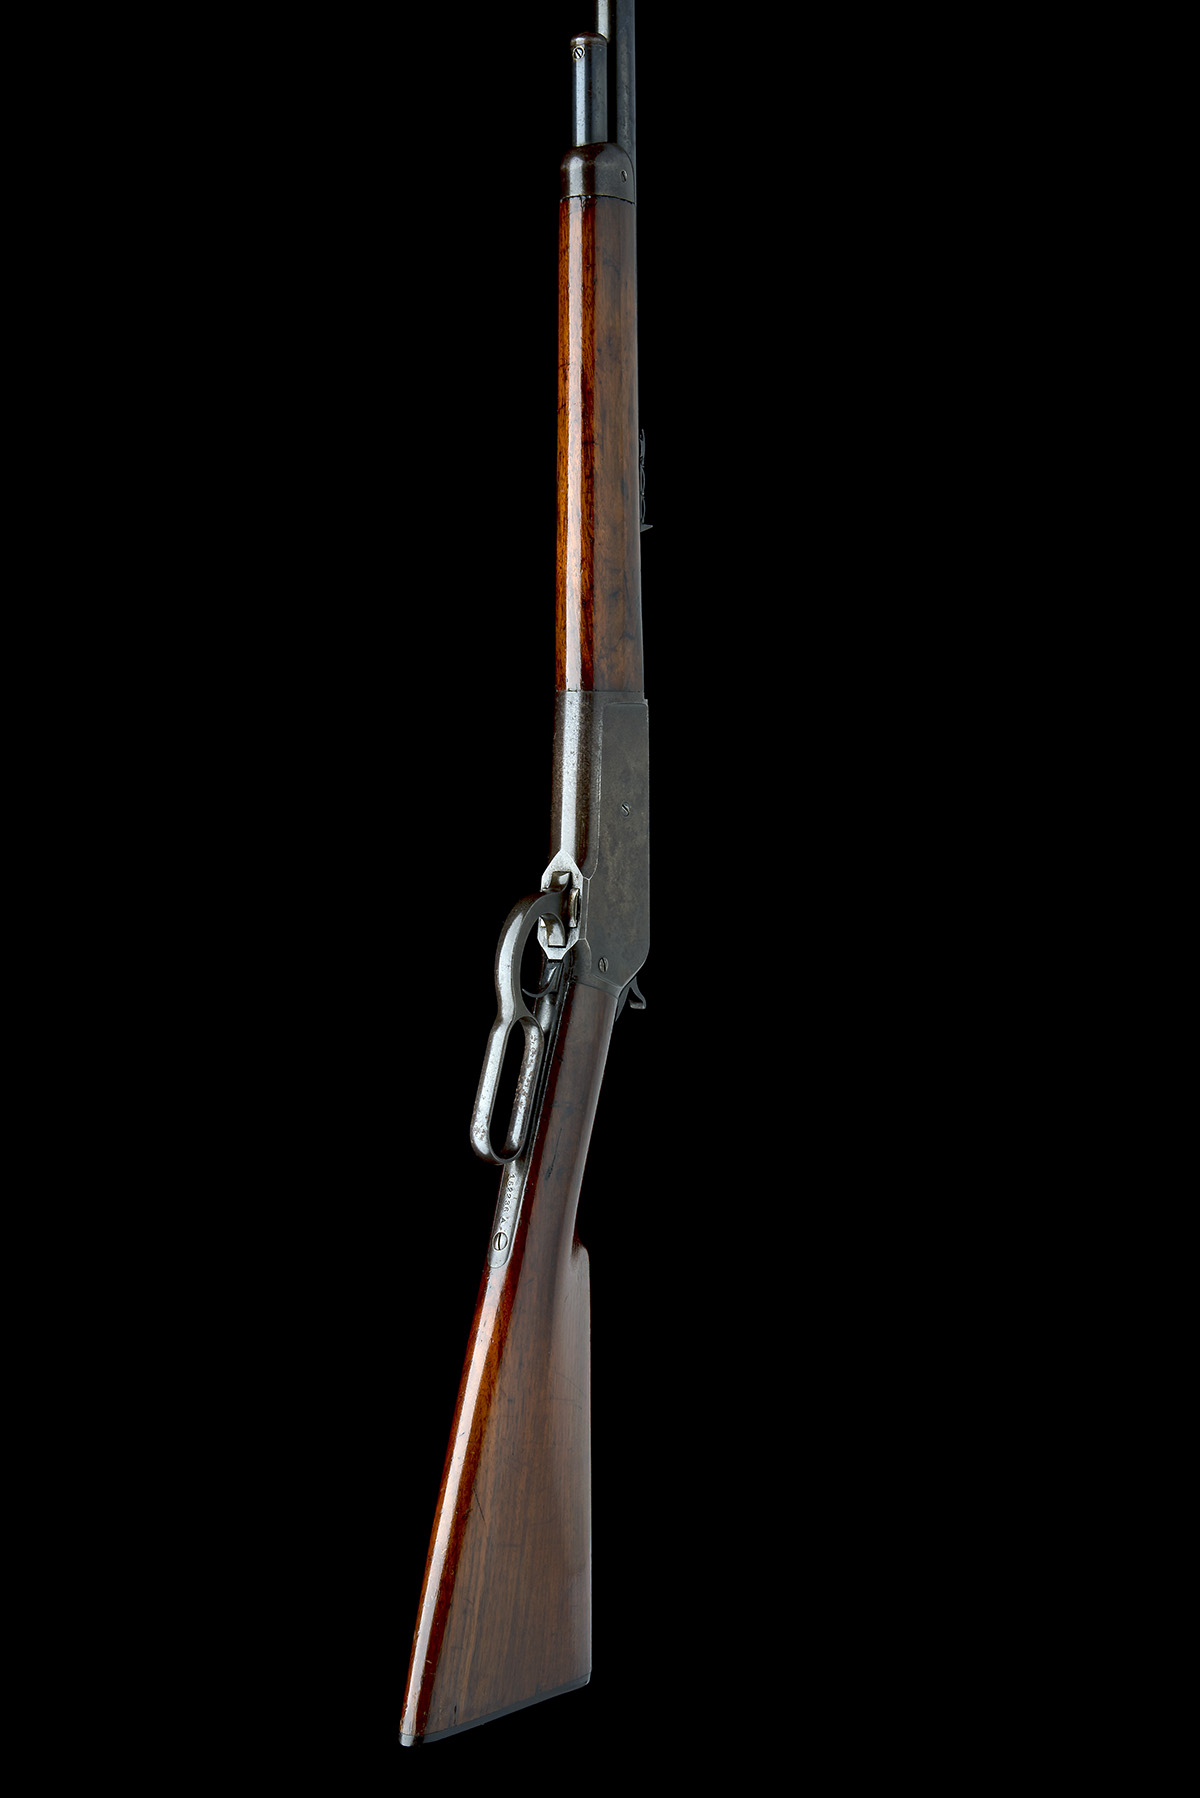 WINCHESTER REPEATING ARMS, USA A 50-110 (WCF) LEVER-ACTION SPORTING-RIFLE, MODEL 'ENGLISH MODEL - Image 7 of 9